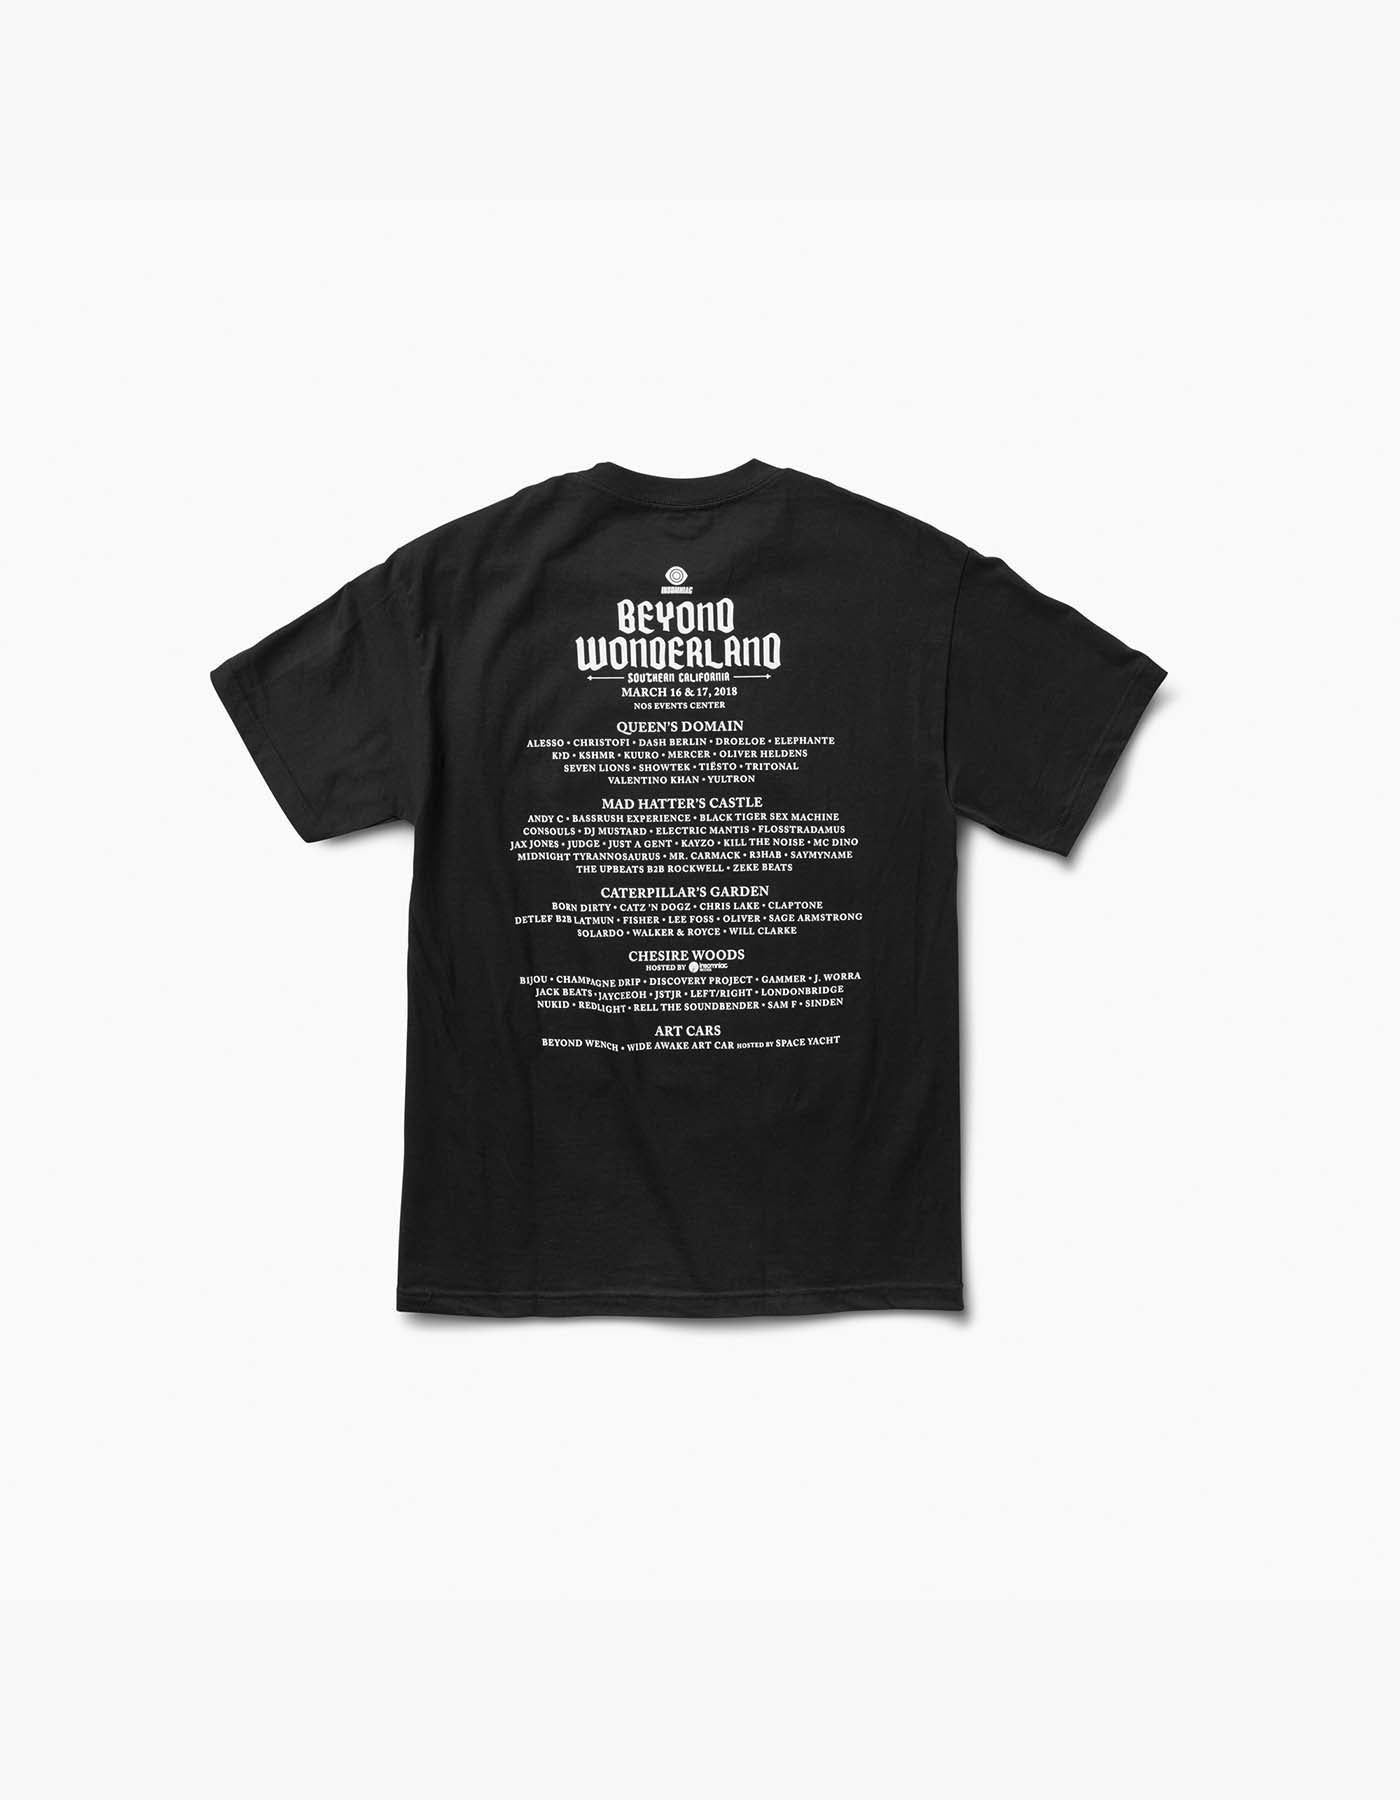 Beyond Wonderland 2018 Line Up Tee Black